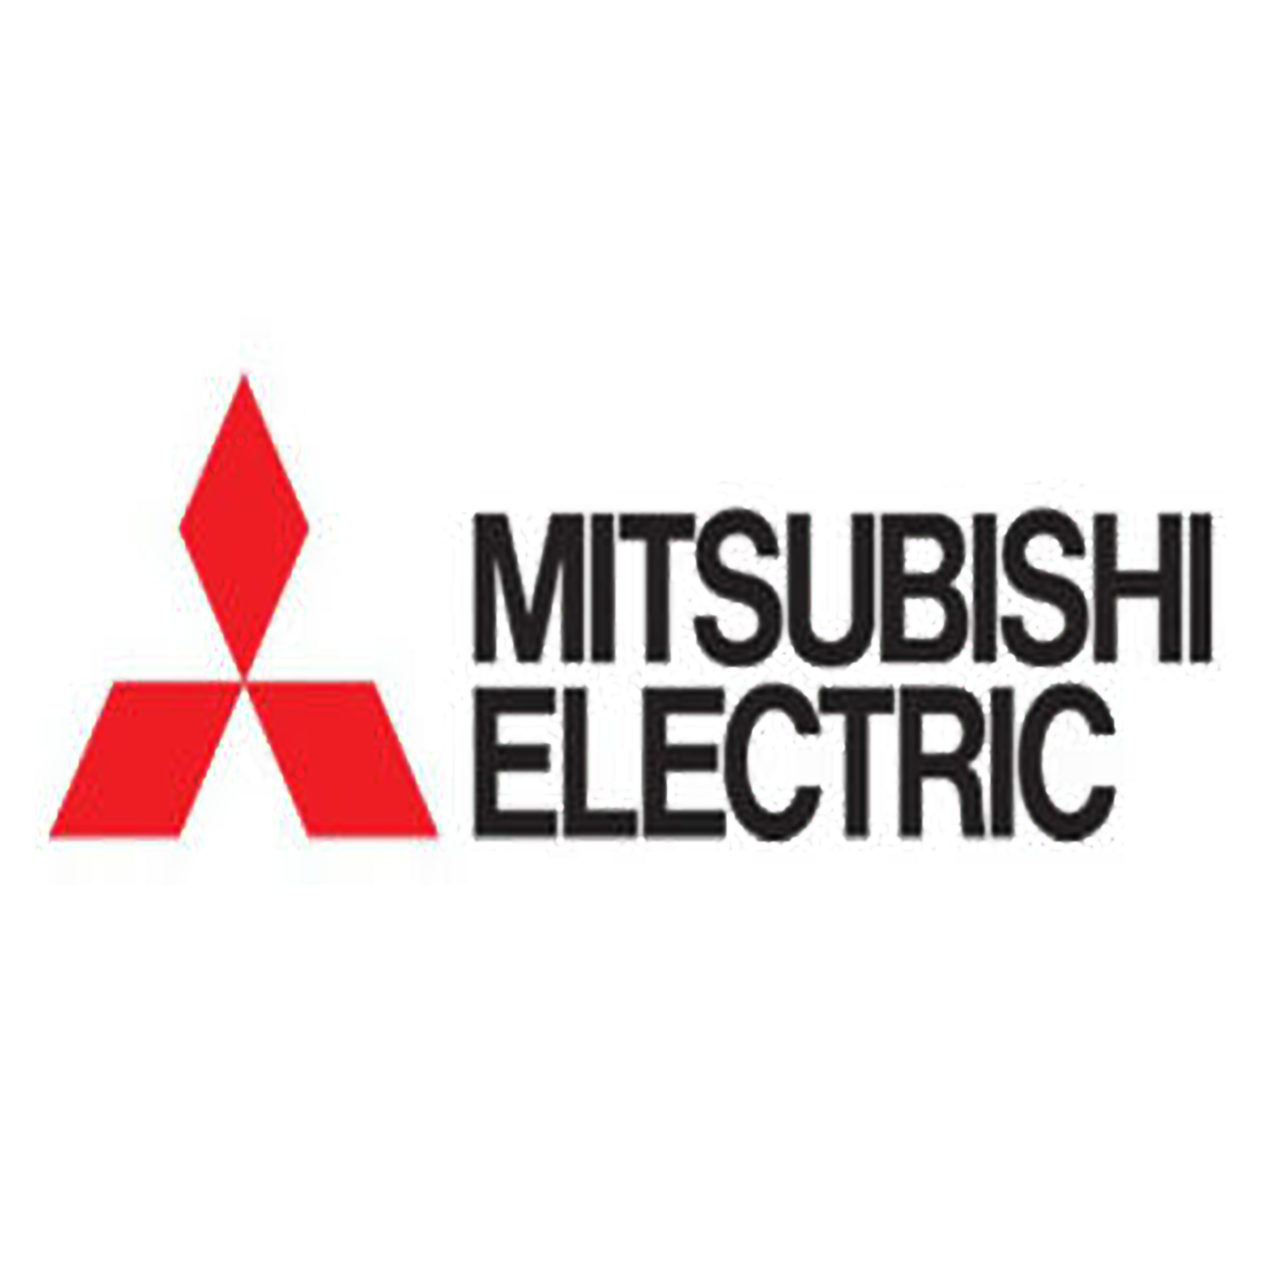 Mistsubishi Electric